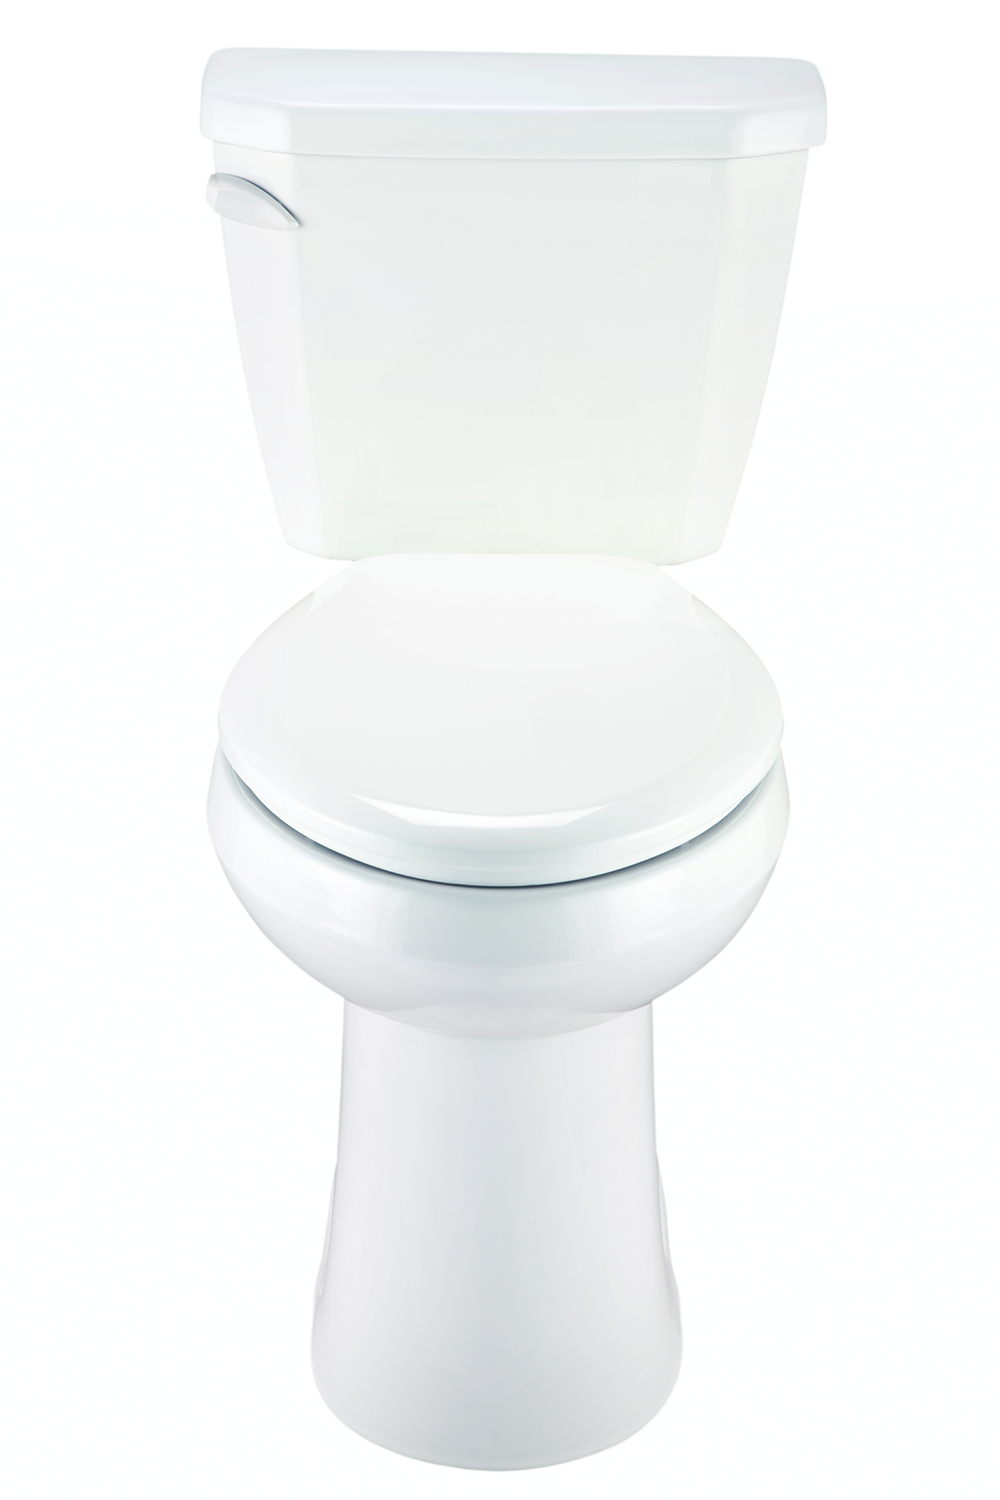 10 inch rough in toilet - Viper 1 6 Gpf 10 Rough In Two Piece Elongated Ergoheight Toilet Gerber Plumbing